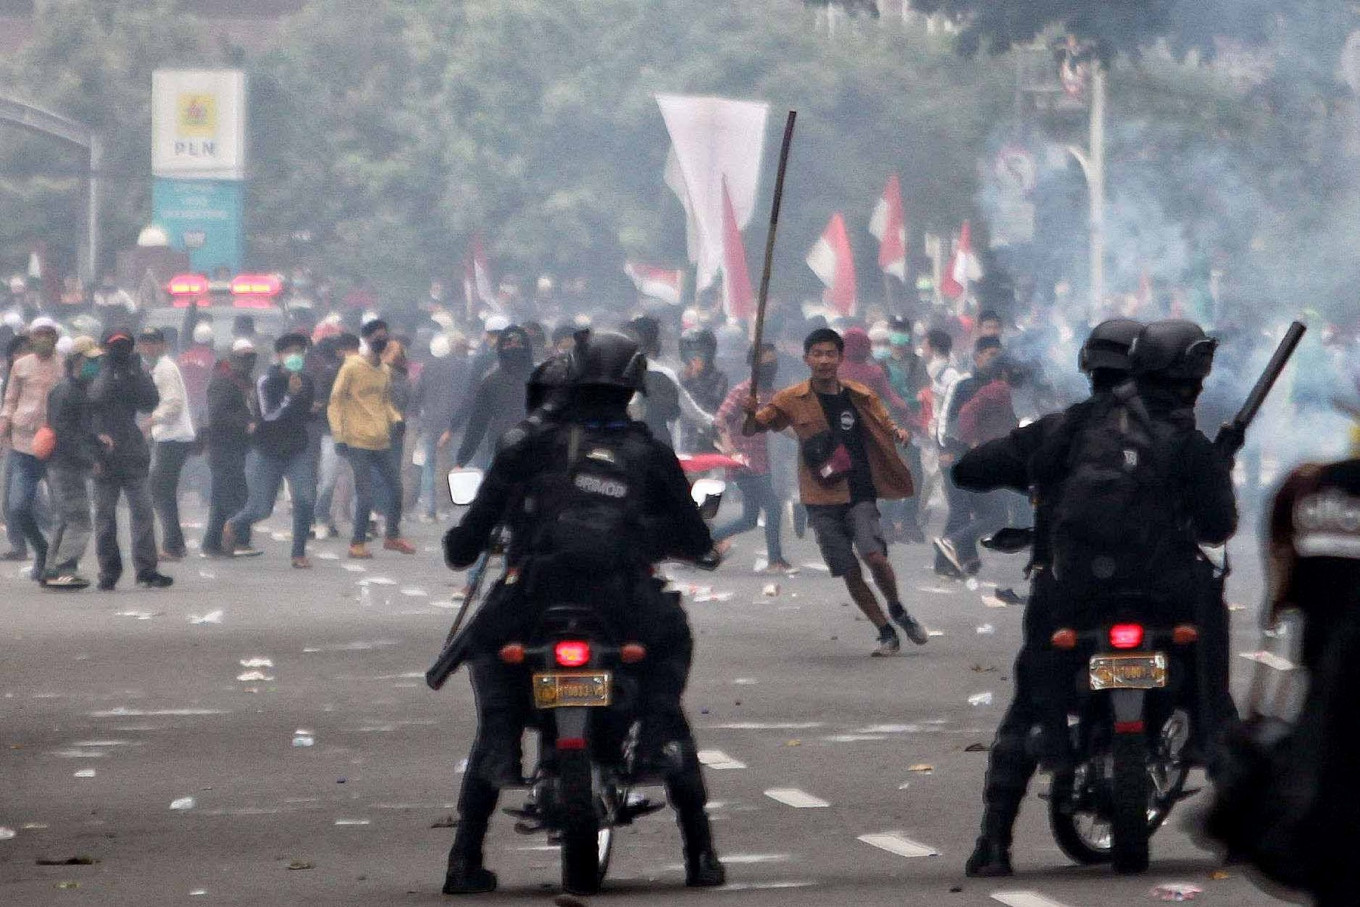 Kontras urges Jokowi to evaluate National Police for alleged brutality against protestors